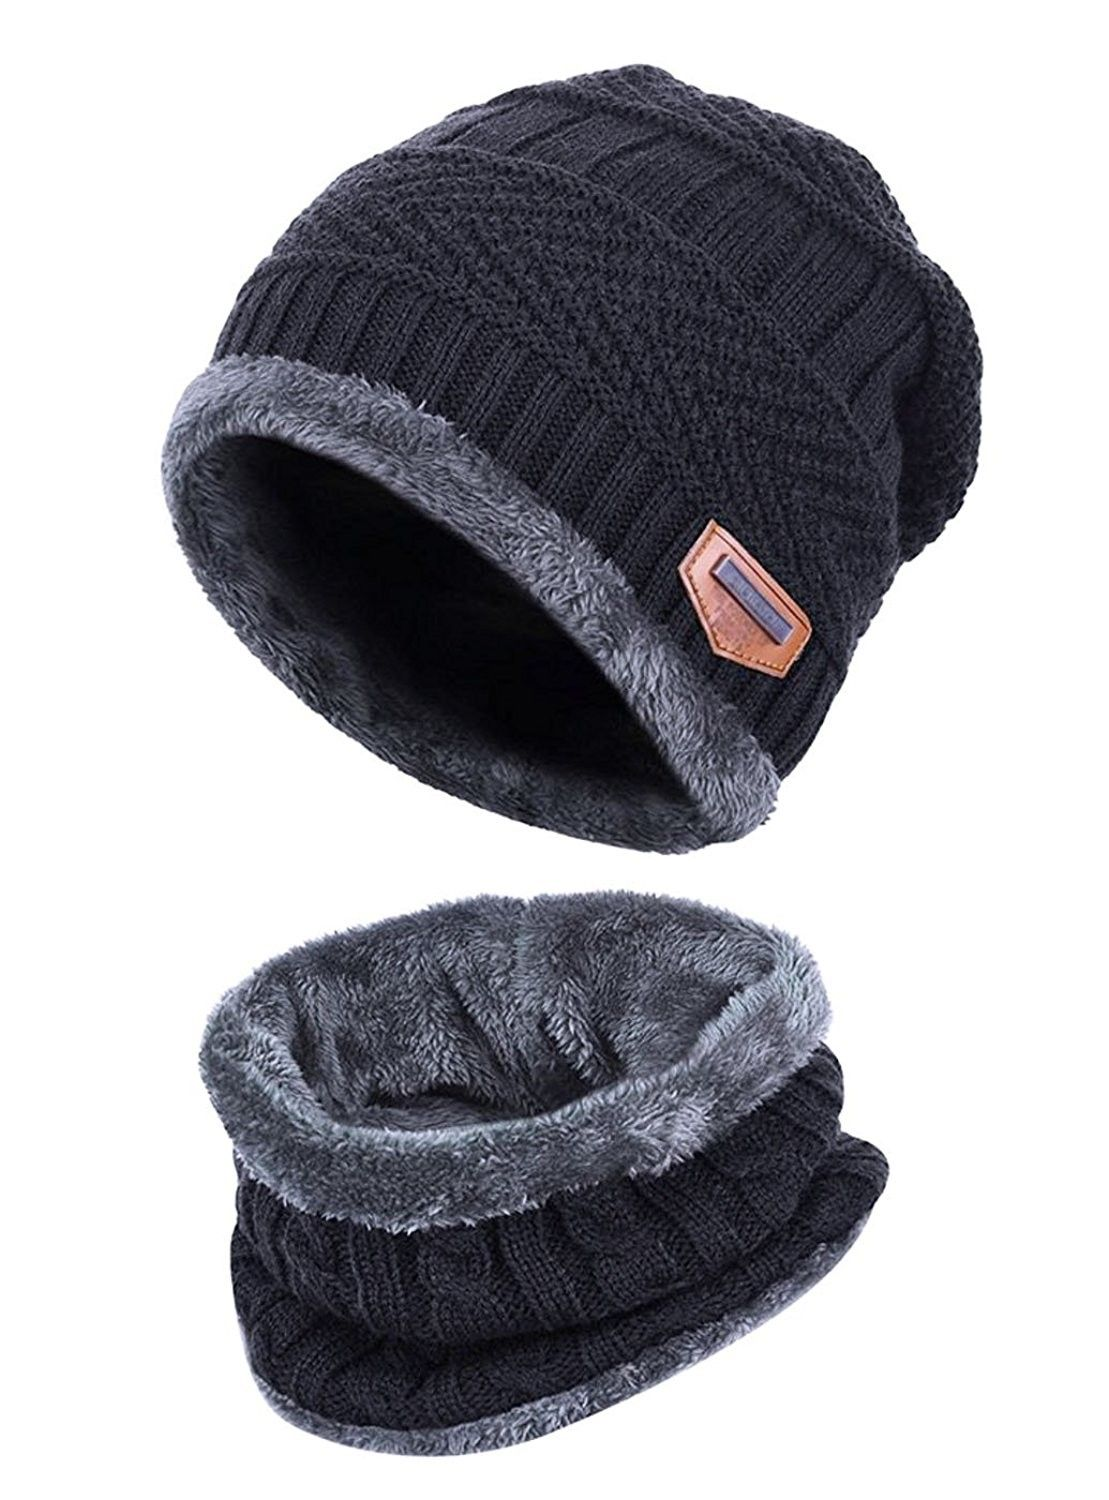 37d32e687 Slouchy Beanie Winter Hats For Men Windproof Scarf Warm Snow Knit ...